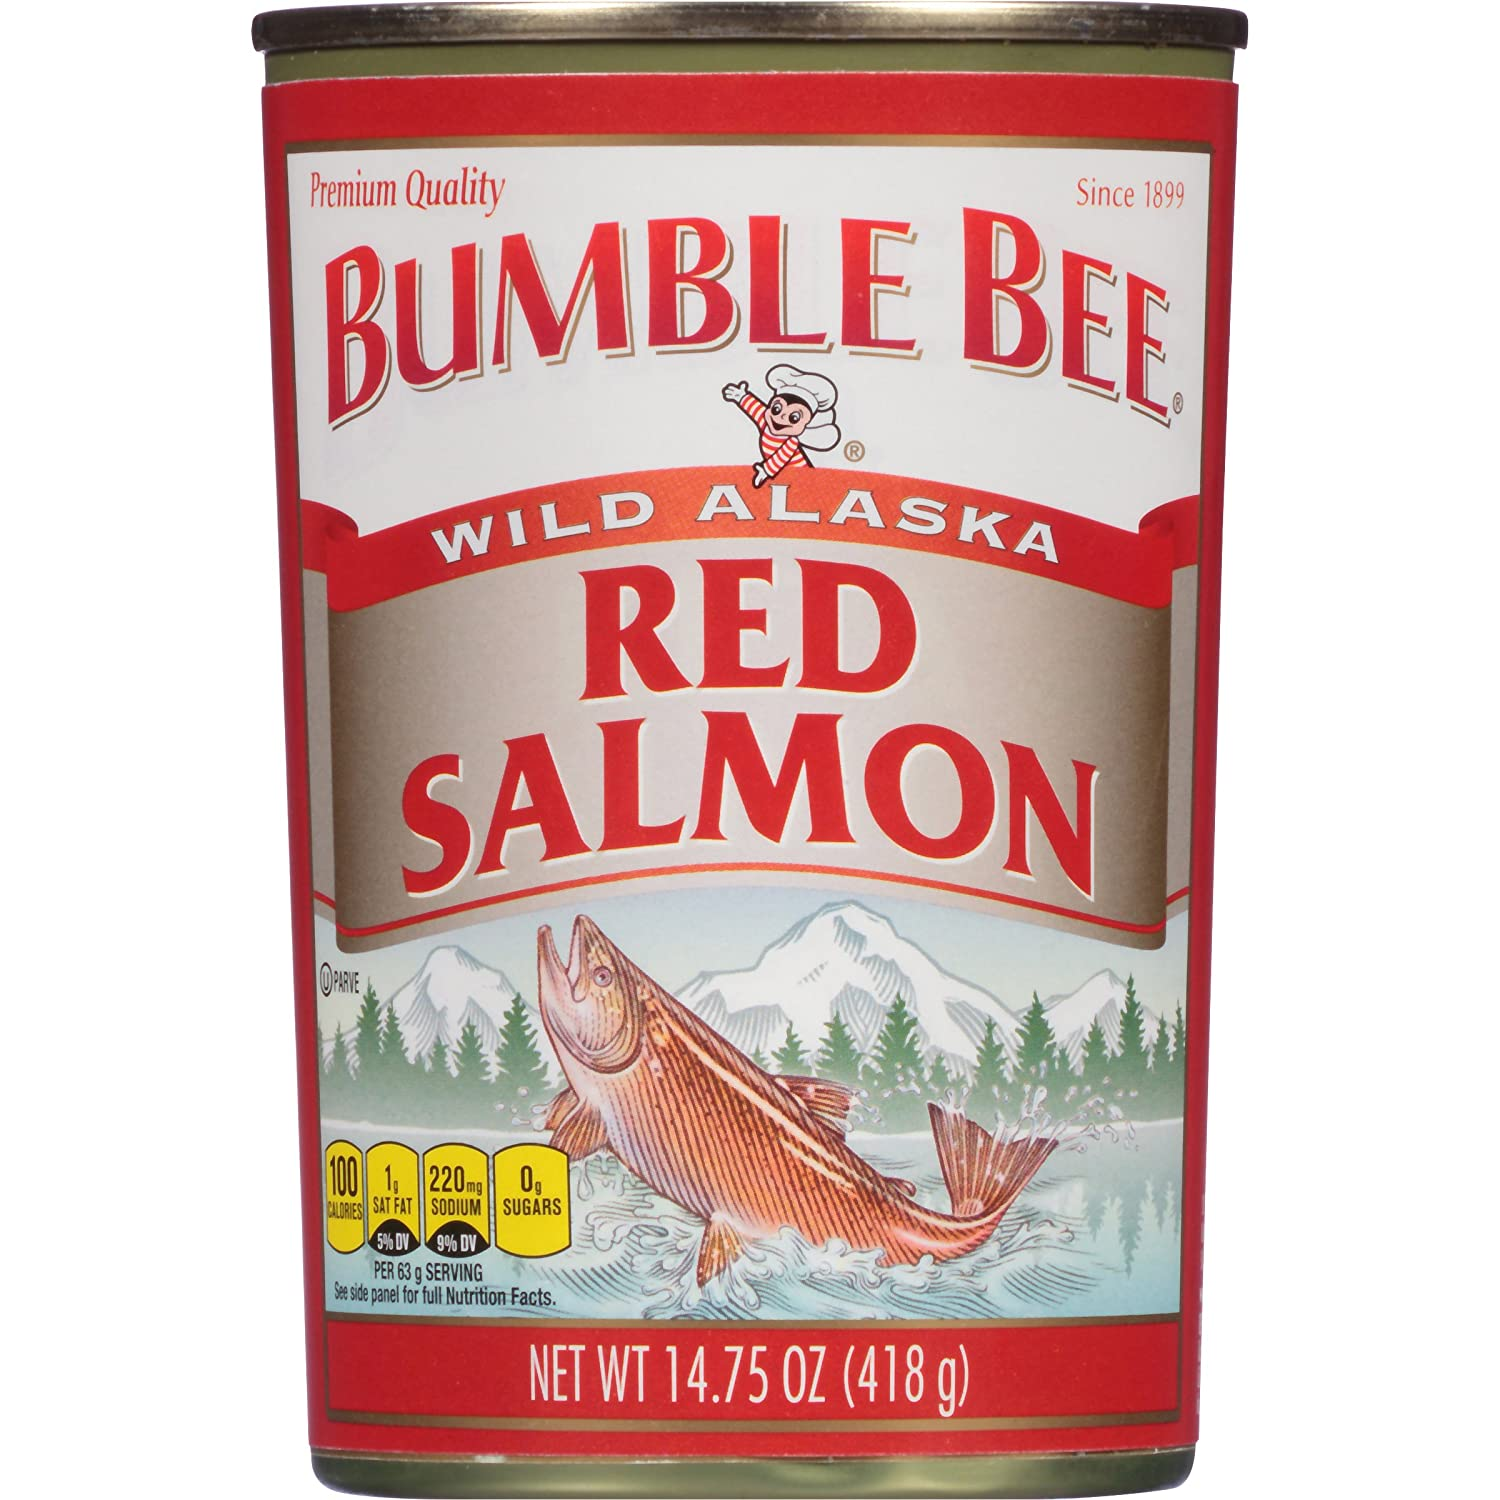 BUMBLE BEE Wild Alaska Red Salmon, 14.75 Ounce Can, Ready to Eat Canned Salmon, High Protein, Keto Food, Keto Snack, Gluten Free, Paleo Food, Low Carb Snacks, Canned Food